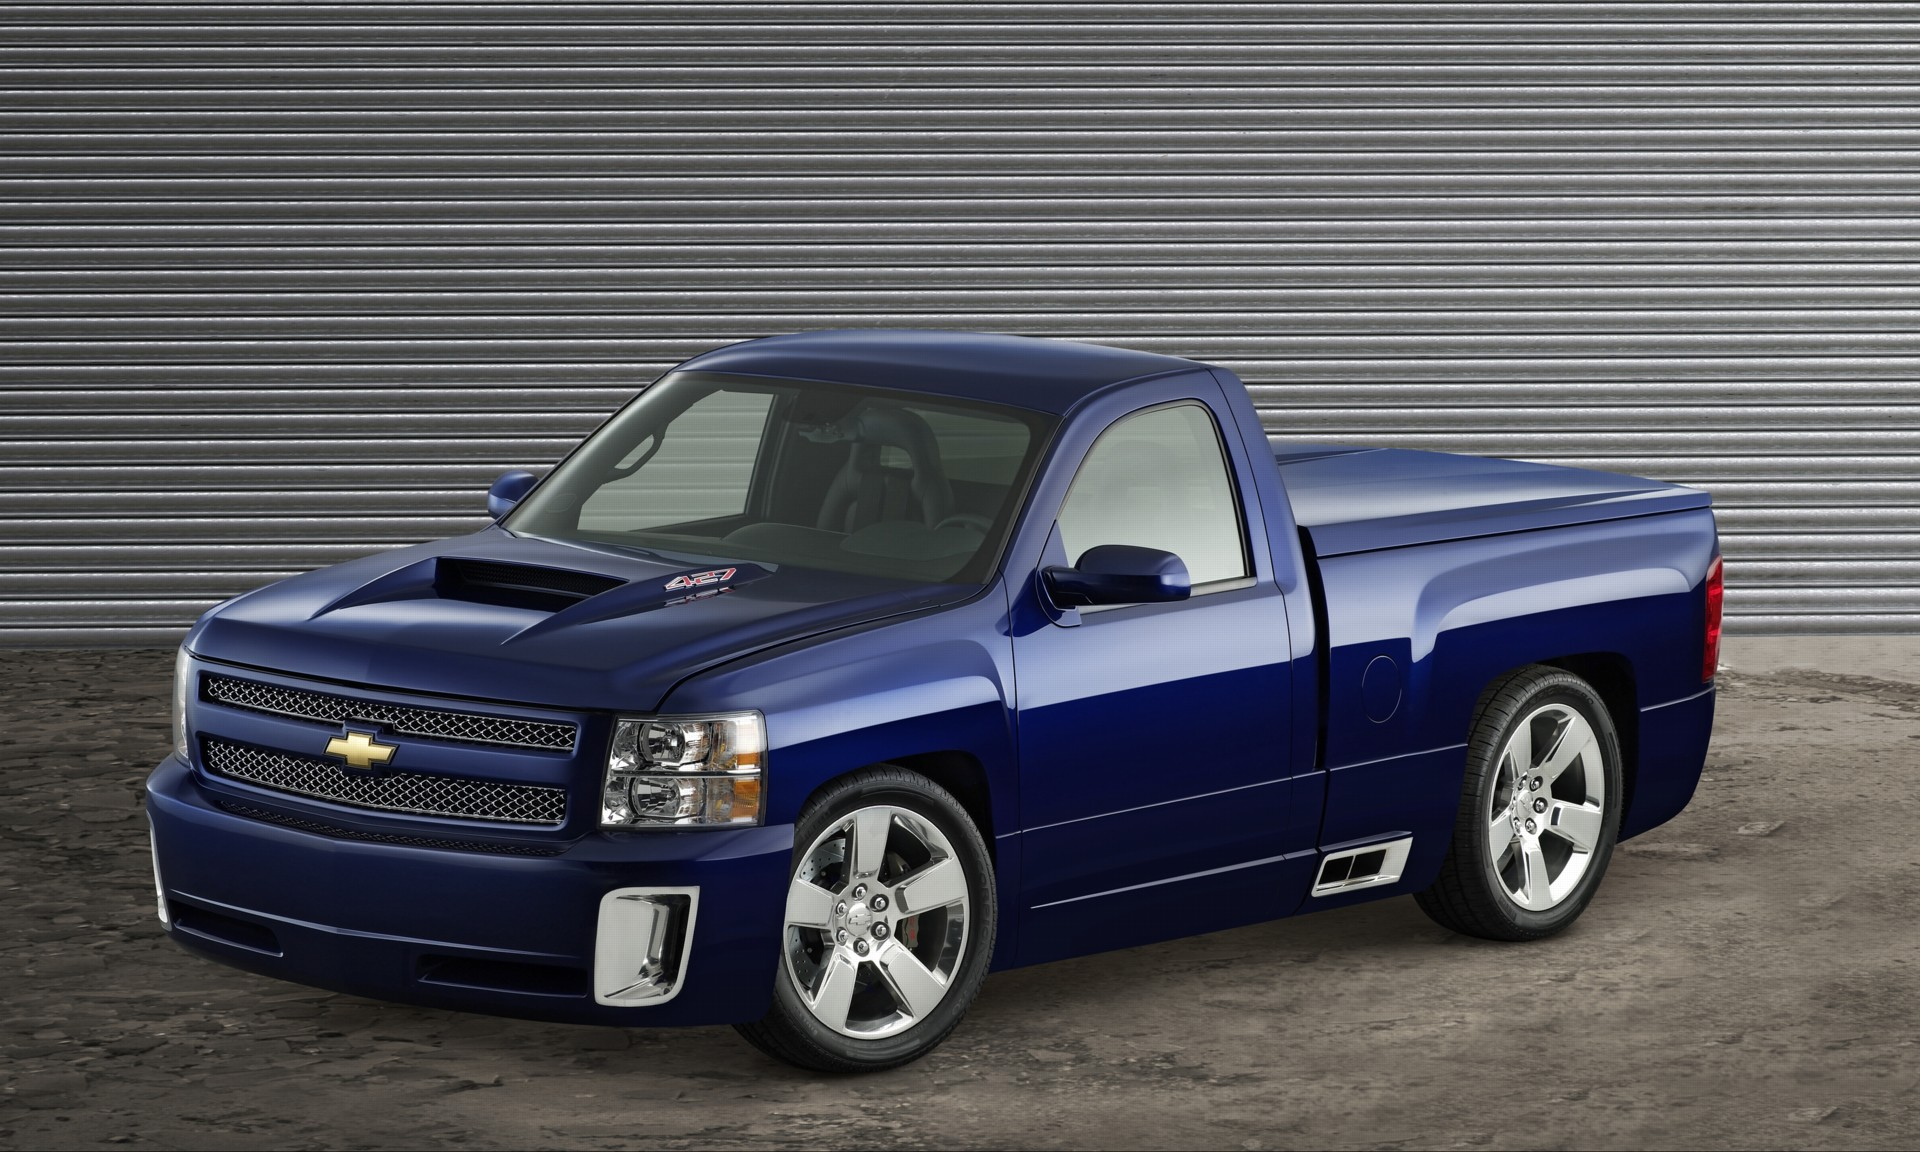 2013 chevy colorado price with Chevrolet Silverado 427 Concept on Chevrolet silverado 1500 2014 furthermore 2014 besides 65A6201A0A0 furthermore Leveling Kit For Chevy Colorado additionally Chevrolet camaro 2013.